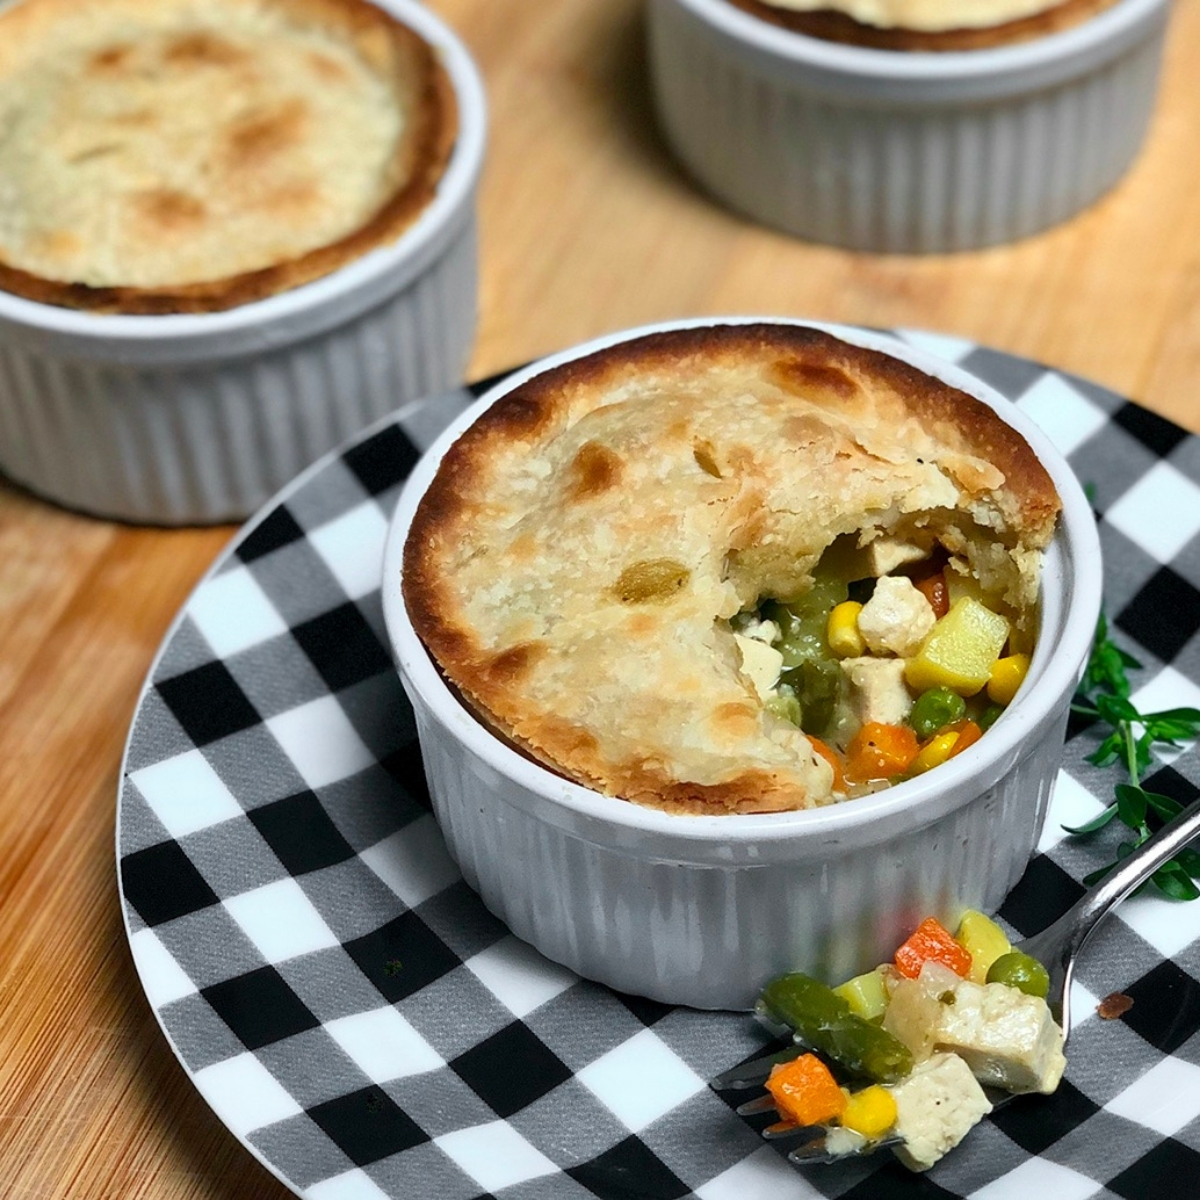 Homemade vegan pot pie with tofu baked inside a white ramekin atop a black and white gingham print plate.